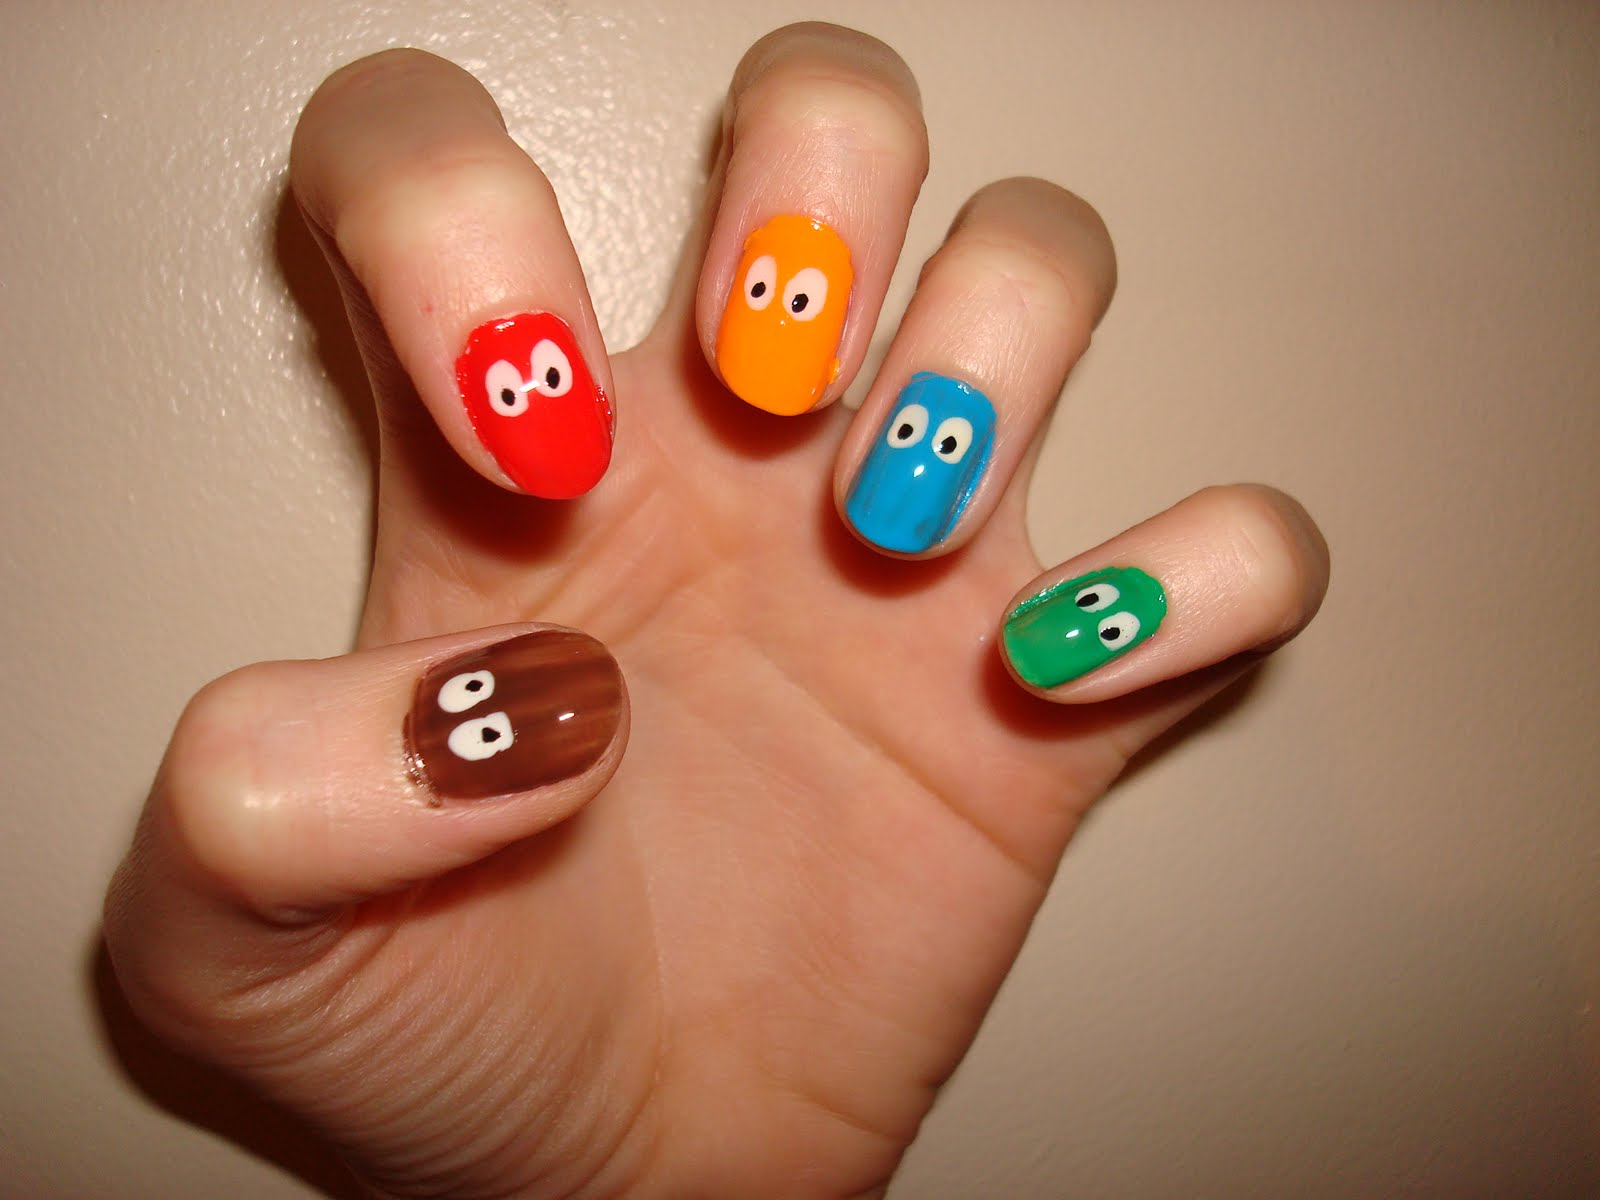 Best Trend Fashion 2012 Project Nail Art Crazy Eyes